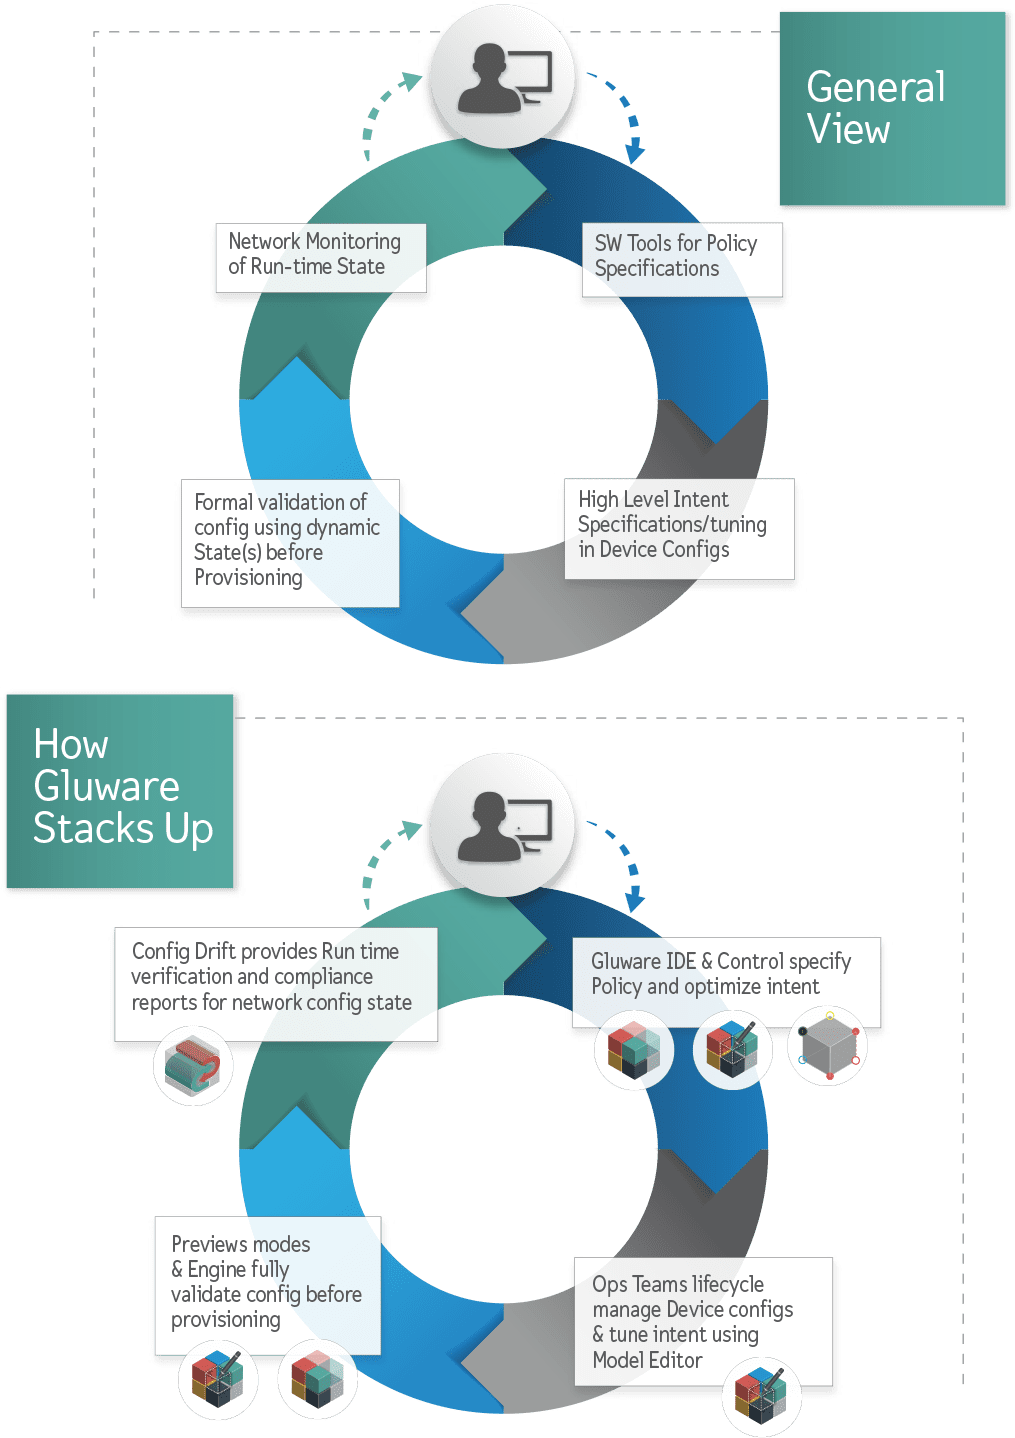 Intent-Based Networking - stacks up 2